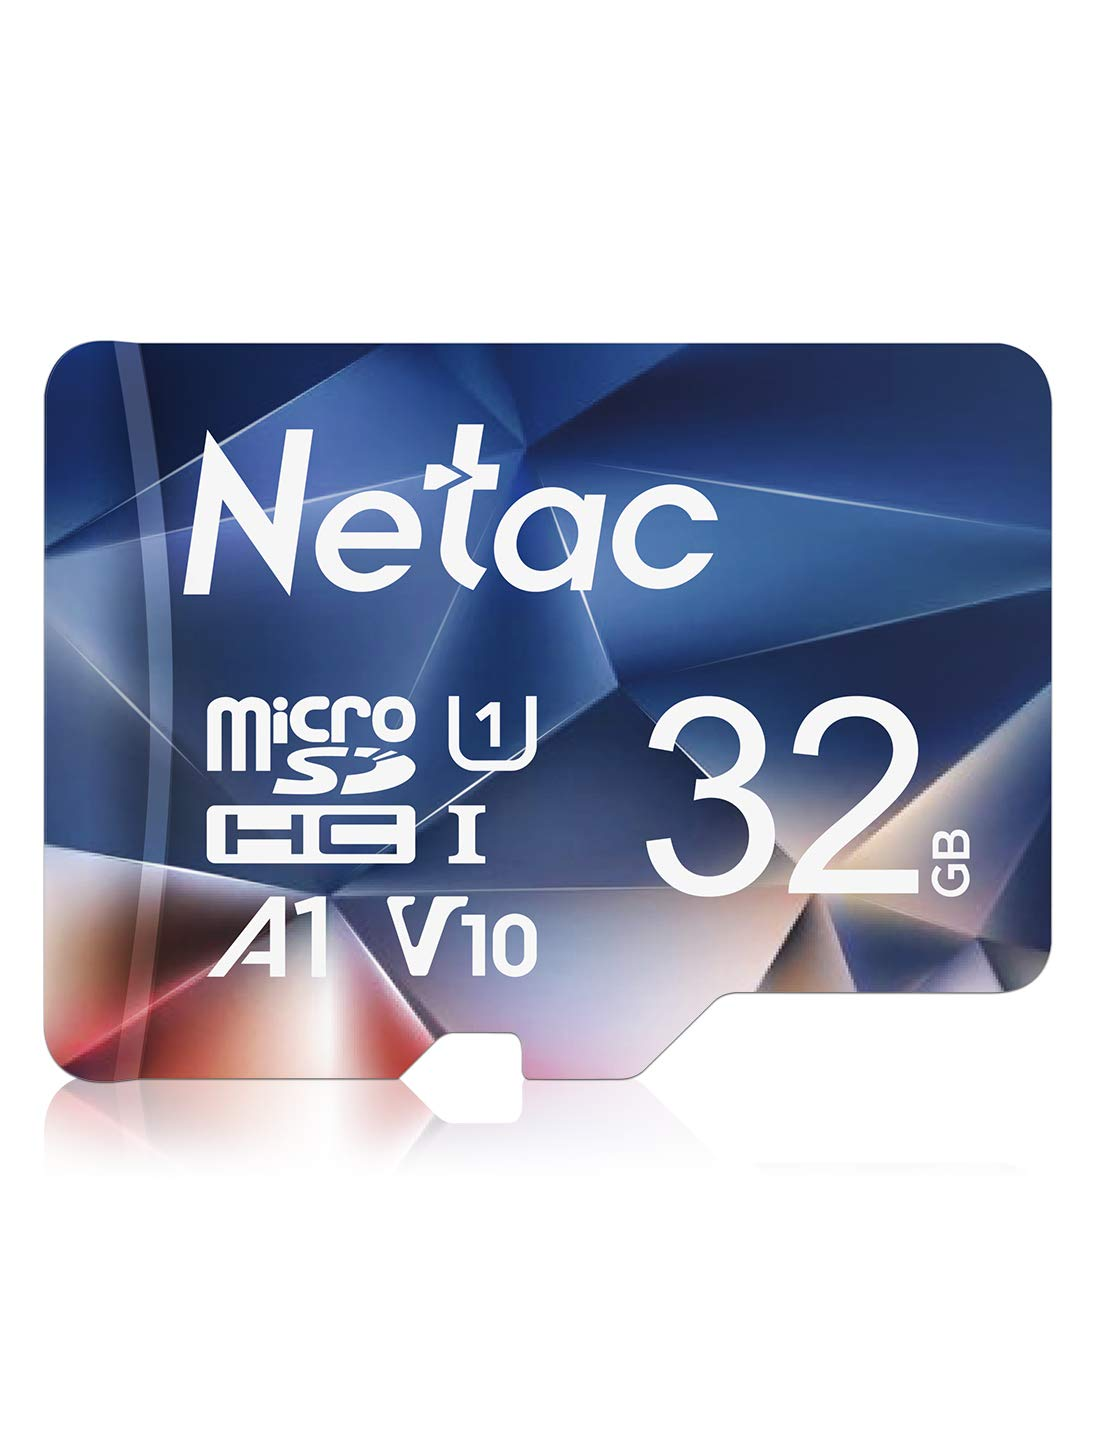 Netac 32GB Micro SD Card, MicroSDHC UHS-I Memory Card - 90MB/s, 600X, U1, C10, Full HD Video V10, A1, FAT32, High Speed Flash TF Card P500 for Laptop/Bluetooth Speaker/Tablet/Drone/Smartphone/Camera